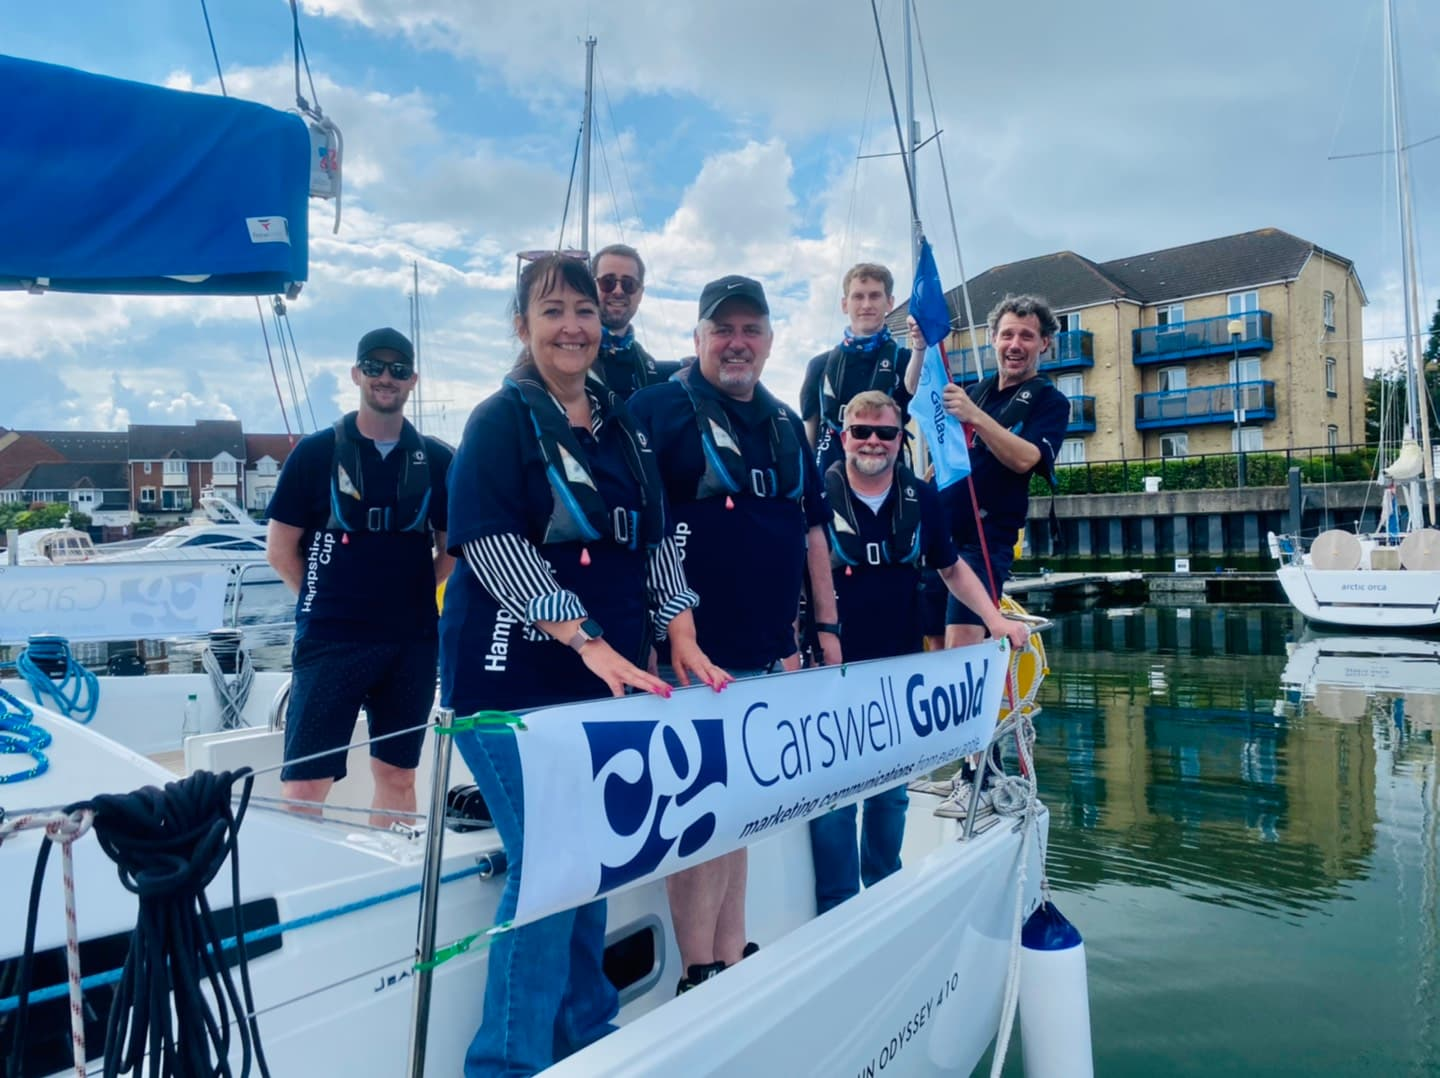 Marketing leaders take to the high seas in Southampton Sailing Week's Gallagher Cup